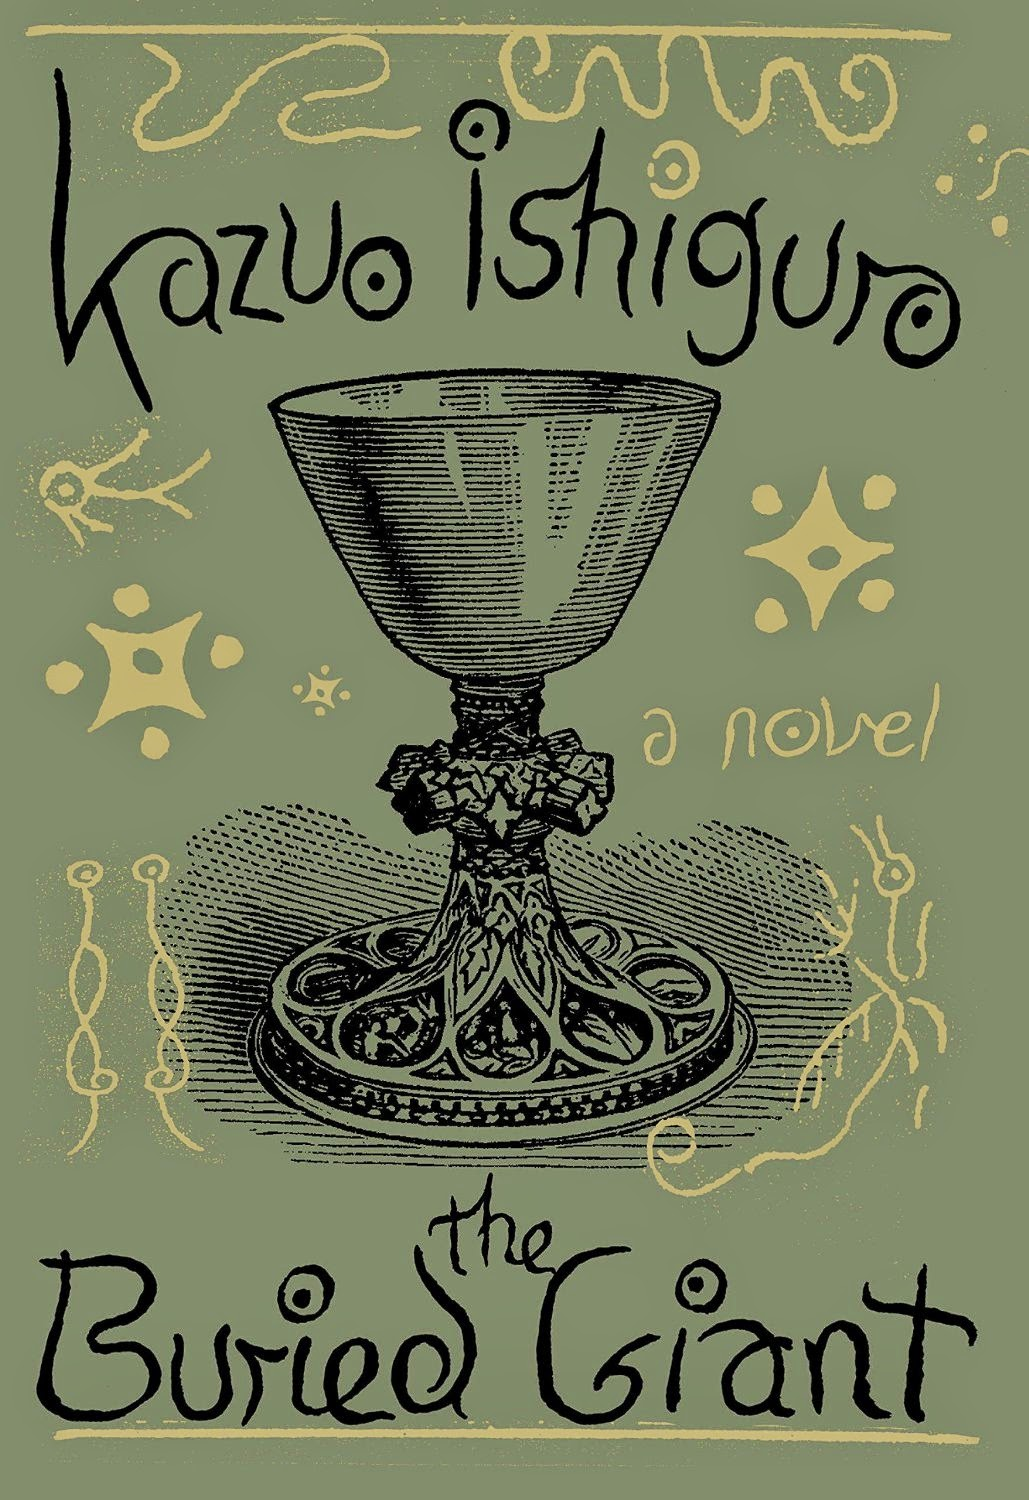 Review of the novel The Buried Giant by Kazuo Ishiguro